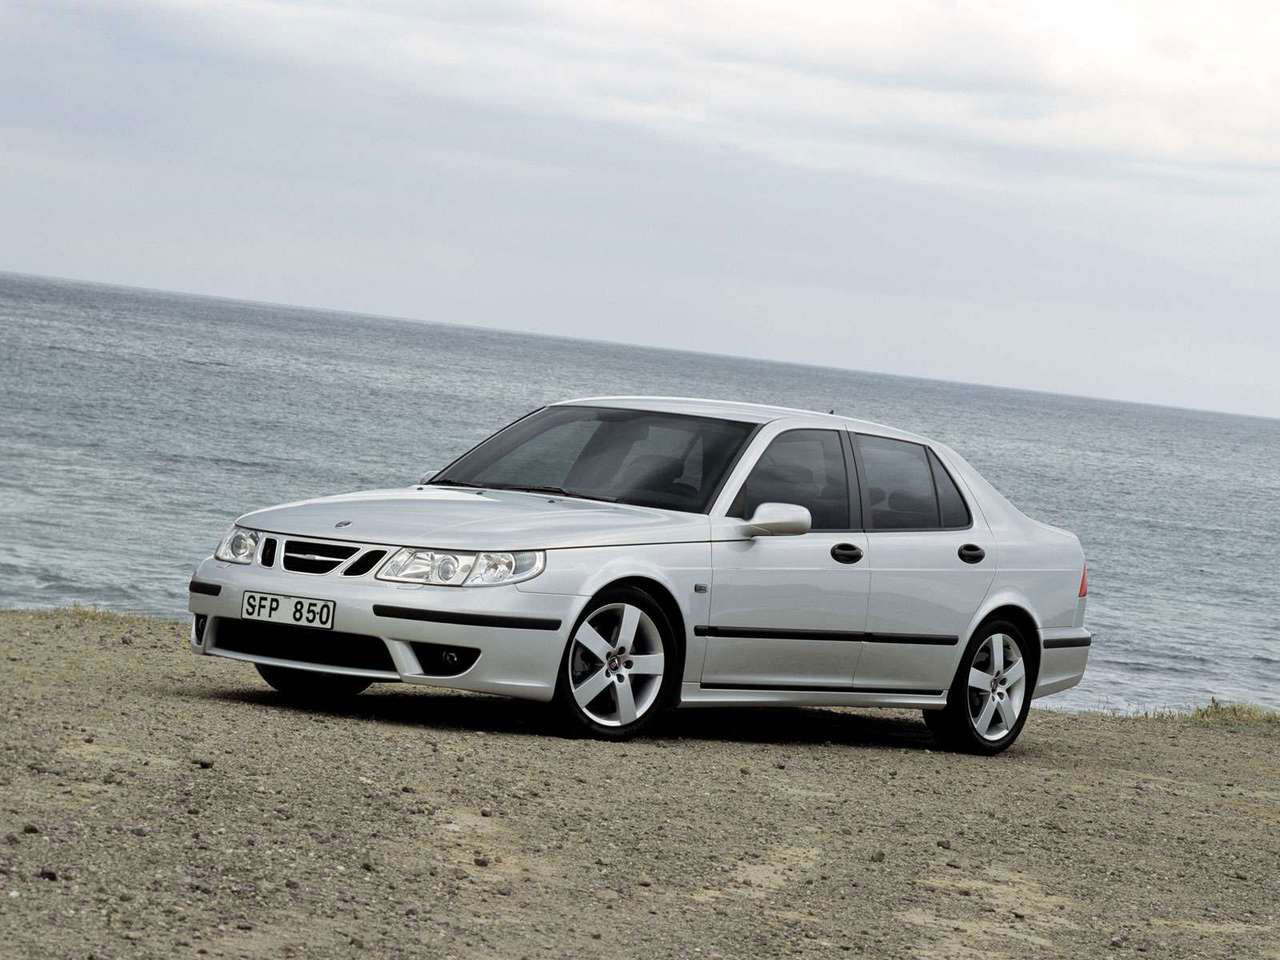 10 Supreme Saabs That Prove Were All Right To Love Them on saab 900 engine